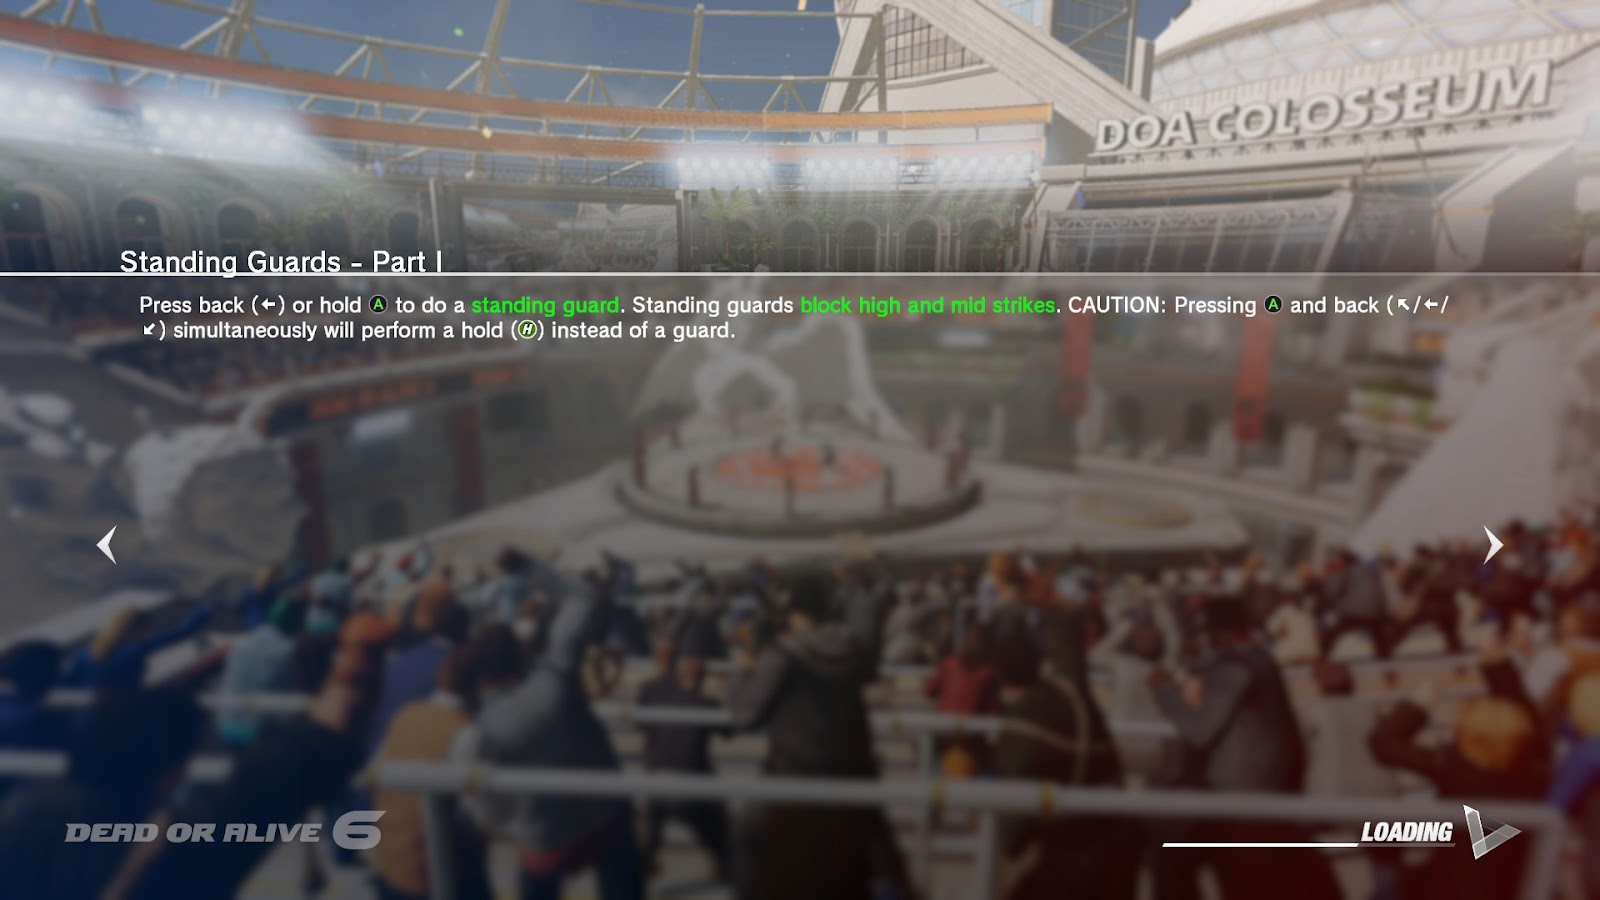 A picture of a combat stadium with text giving a confusing tip of gameplay controls